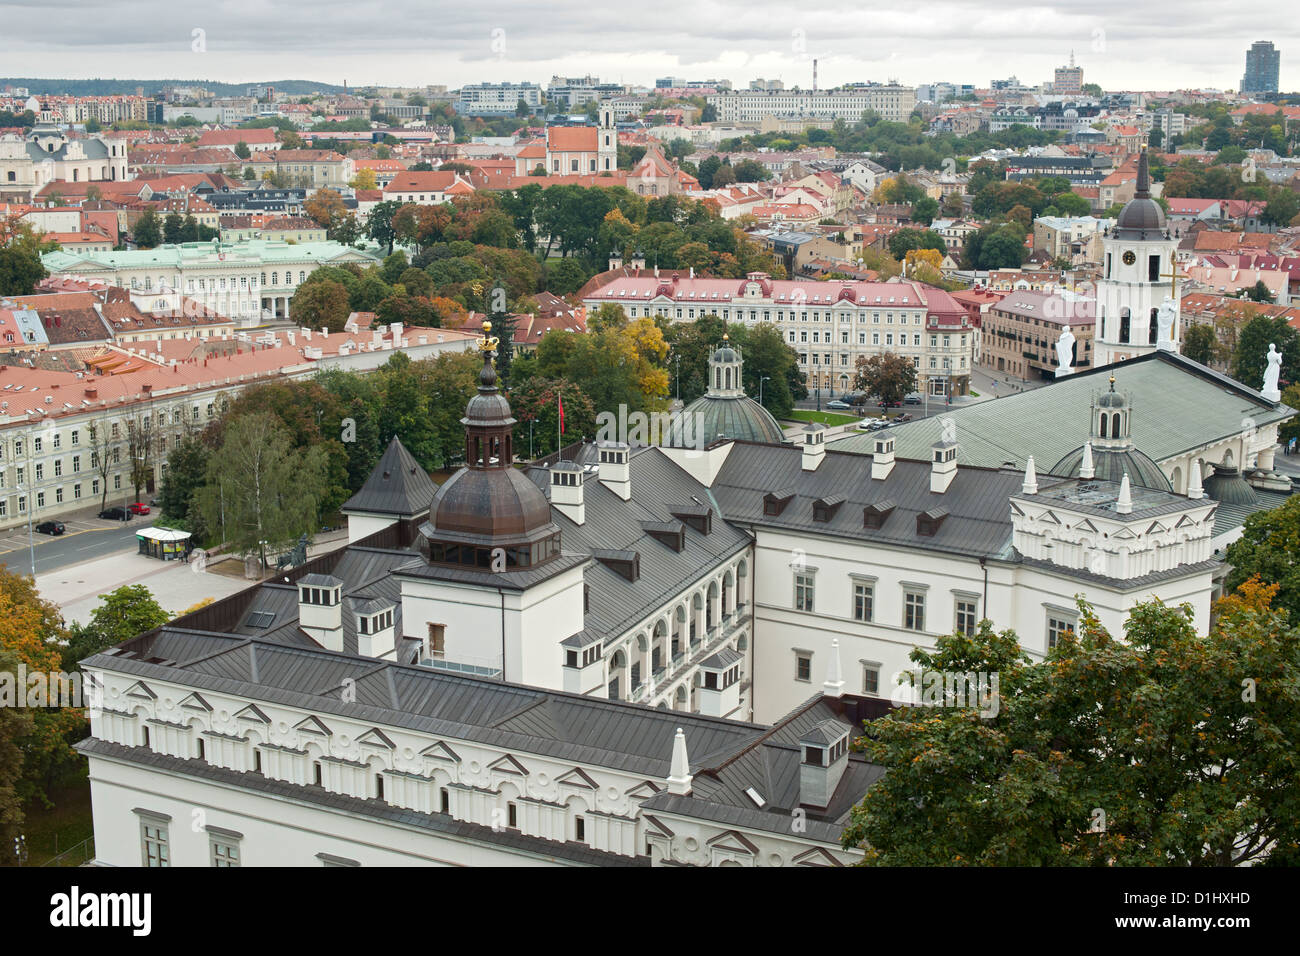 View from Gediminas' Tower across the rooftops of the old town in Vilnius, the capital of Lithuania. - Stock Image